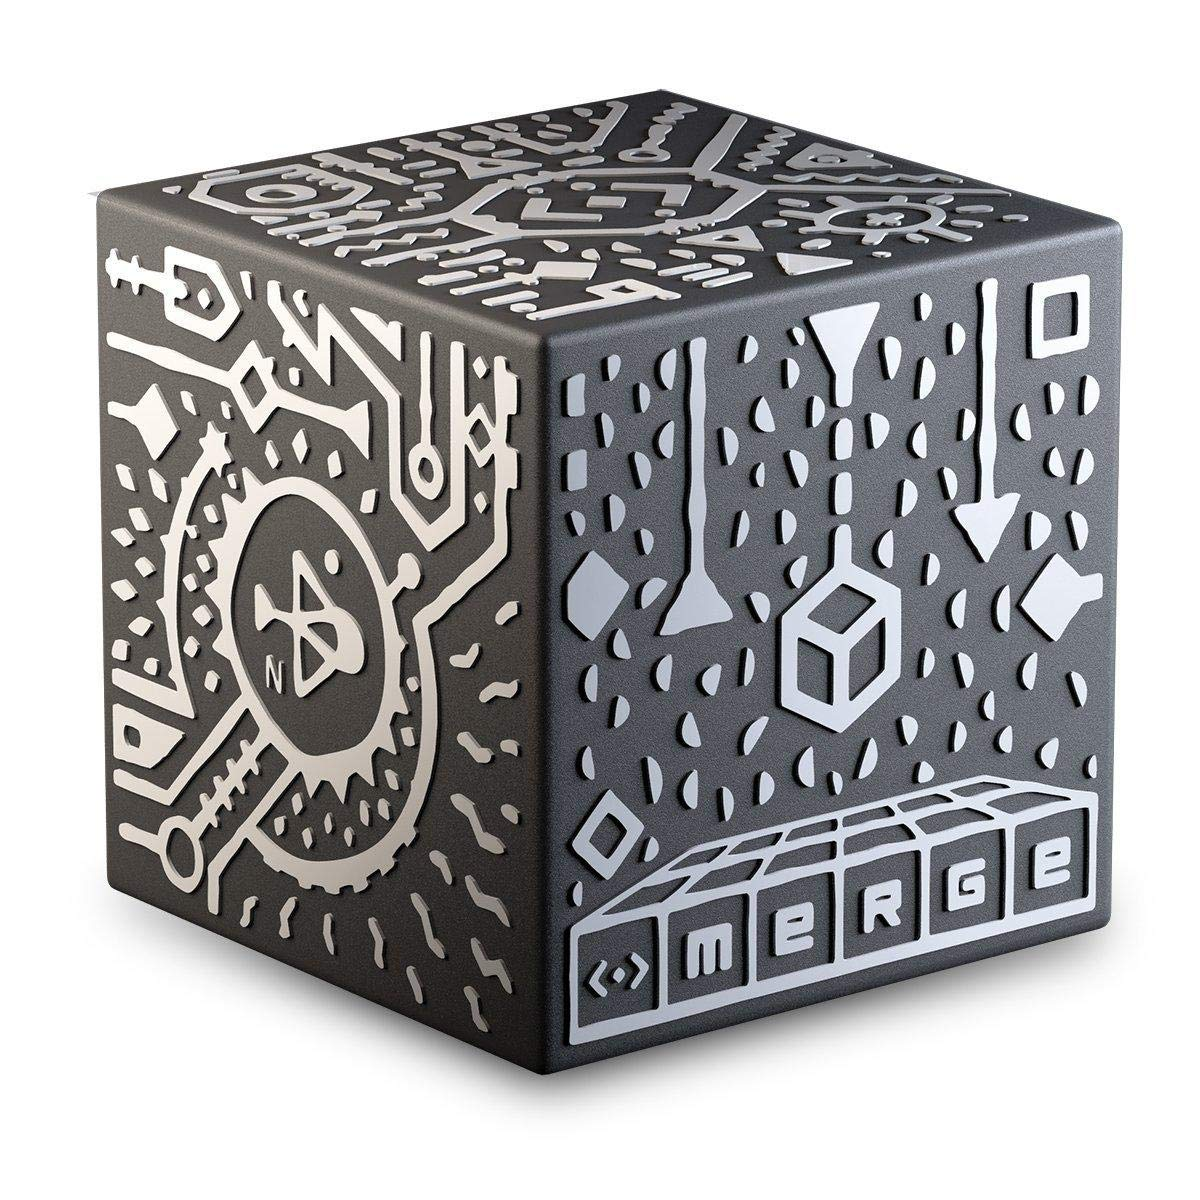 MERGE Cube Augmented Reality STEM Tool - Educational Games for Kids and Everyone - 2071MALL